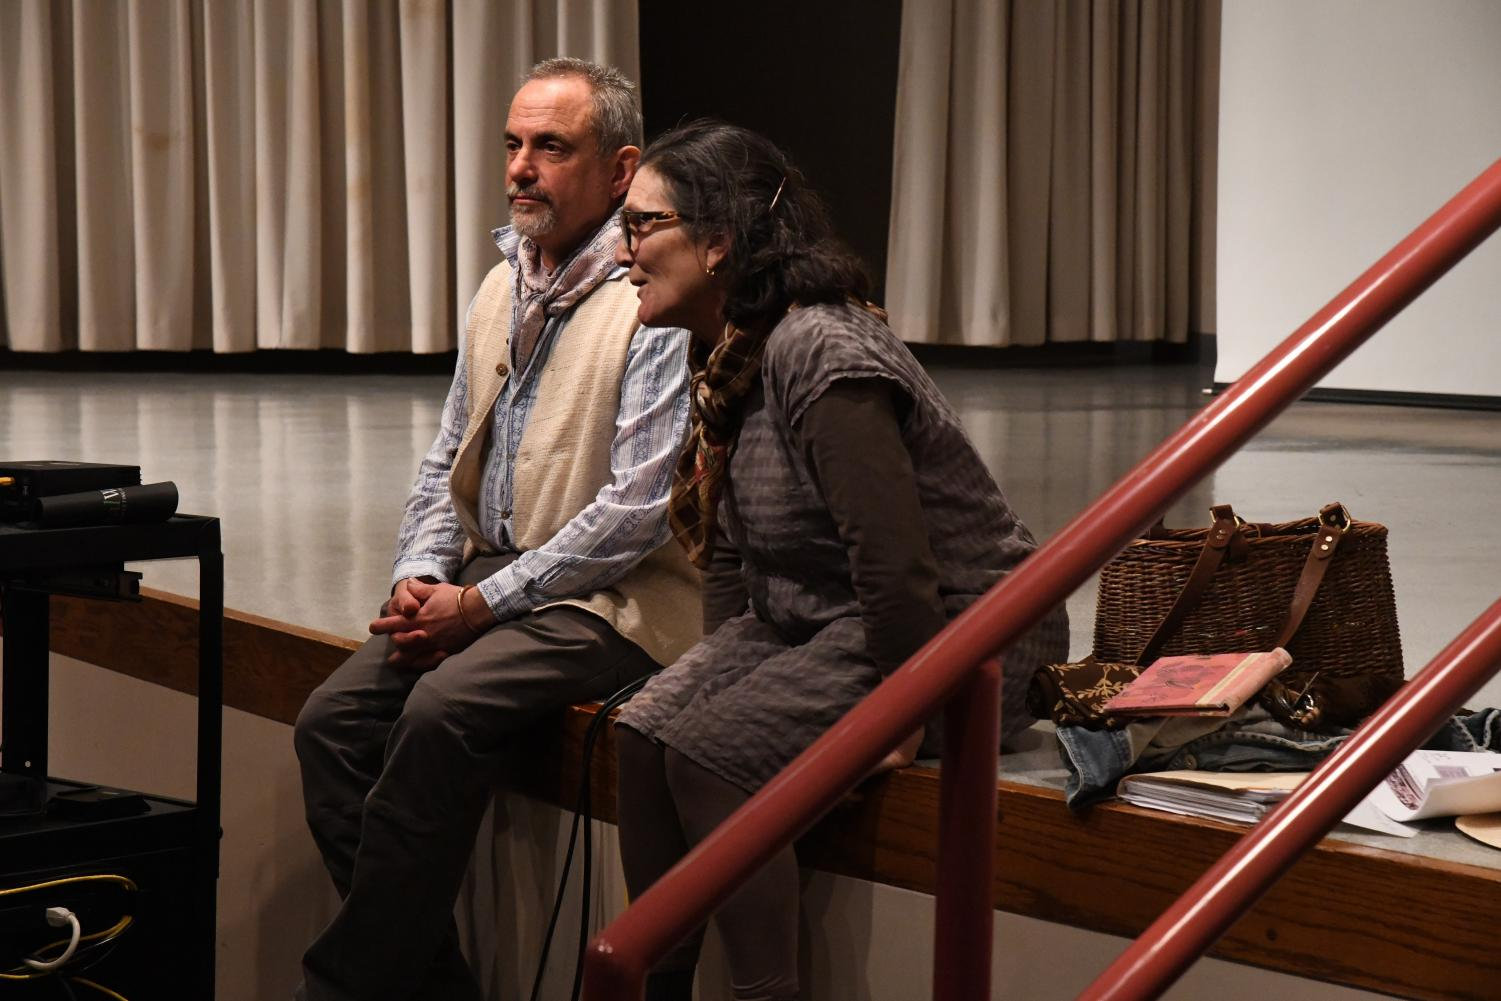 Maddy Fraioli and her husband Howard Peller field questions from the audience at the John McIntire Library Tuesday evening following their ceramics incubator presentation.